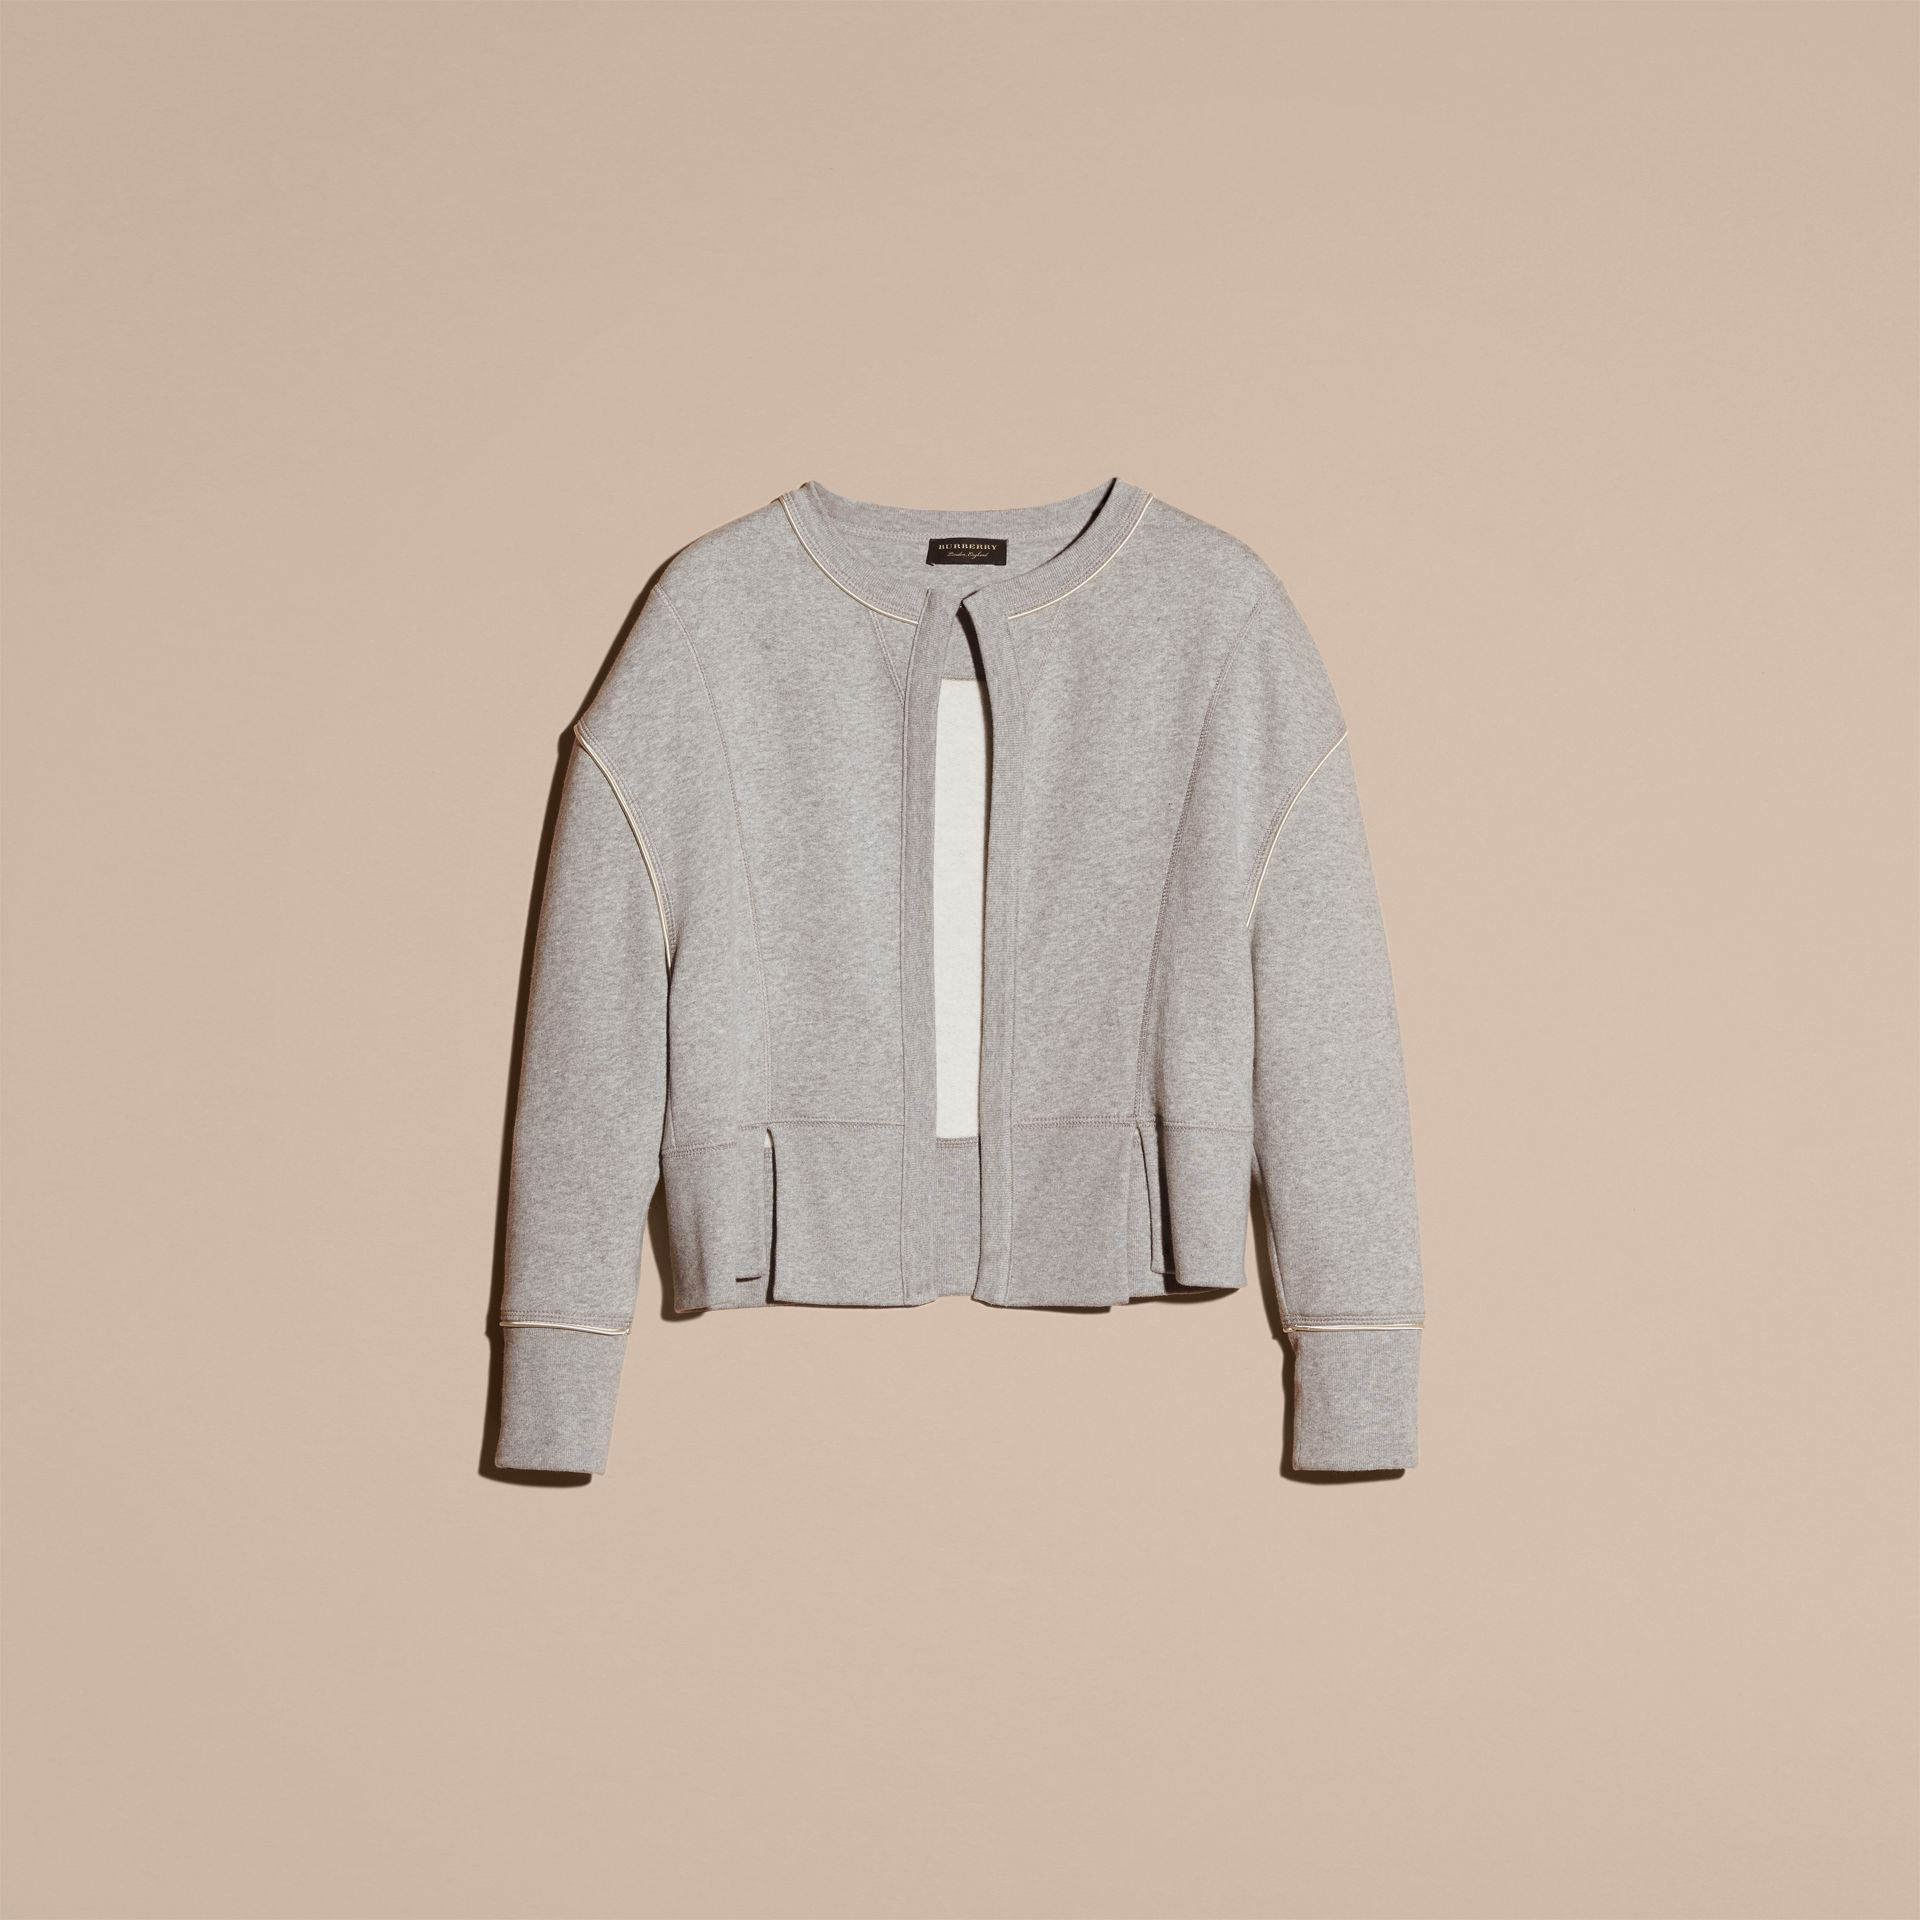 Pale grey melange Cotton Blend Sweatshirt Jacket - gallery image 4